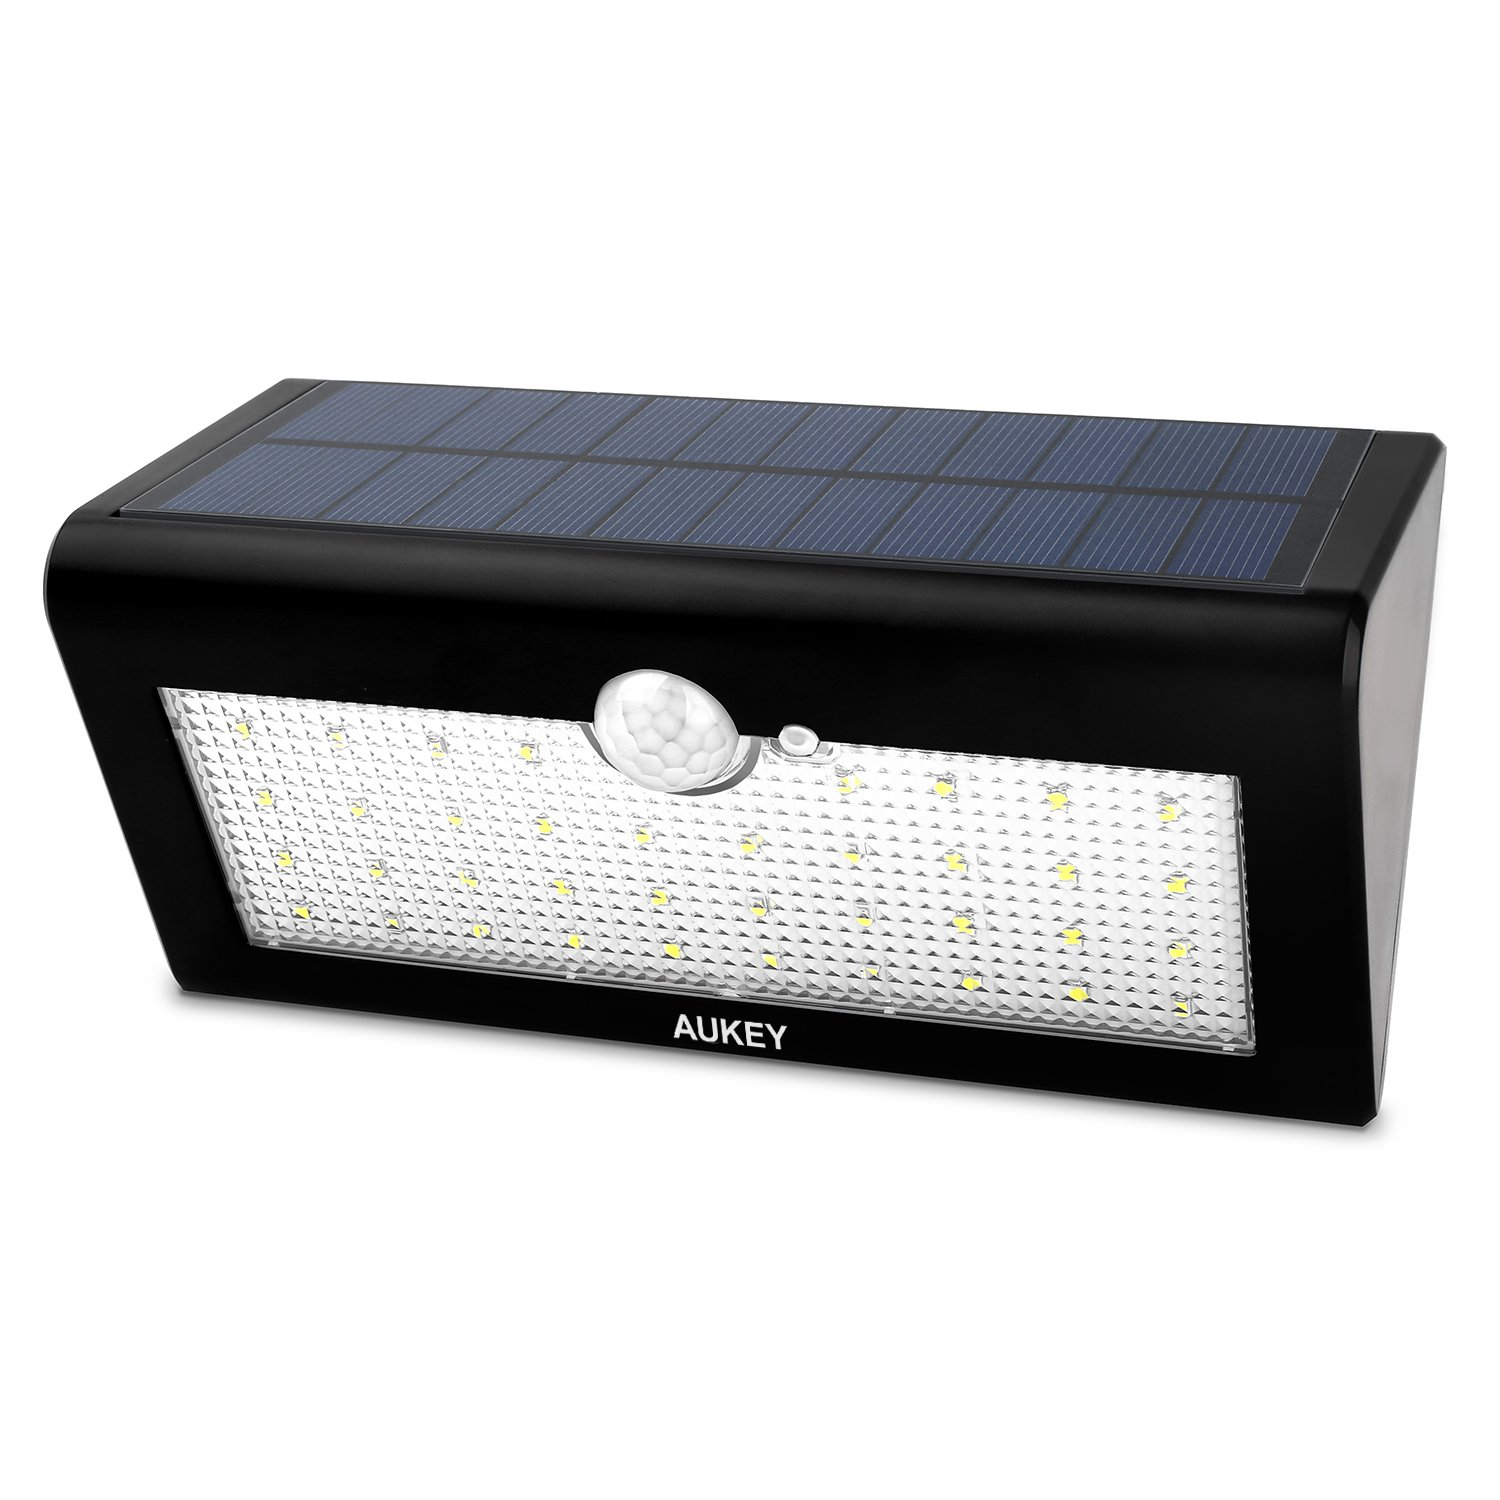 aukey led solar wandleuchte solarlampe mit bewegungsmelder aussenleuchten. Black Bedroom Furniture Sets. Home Design Ideas